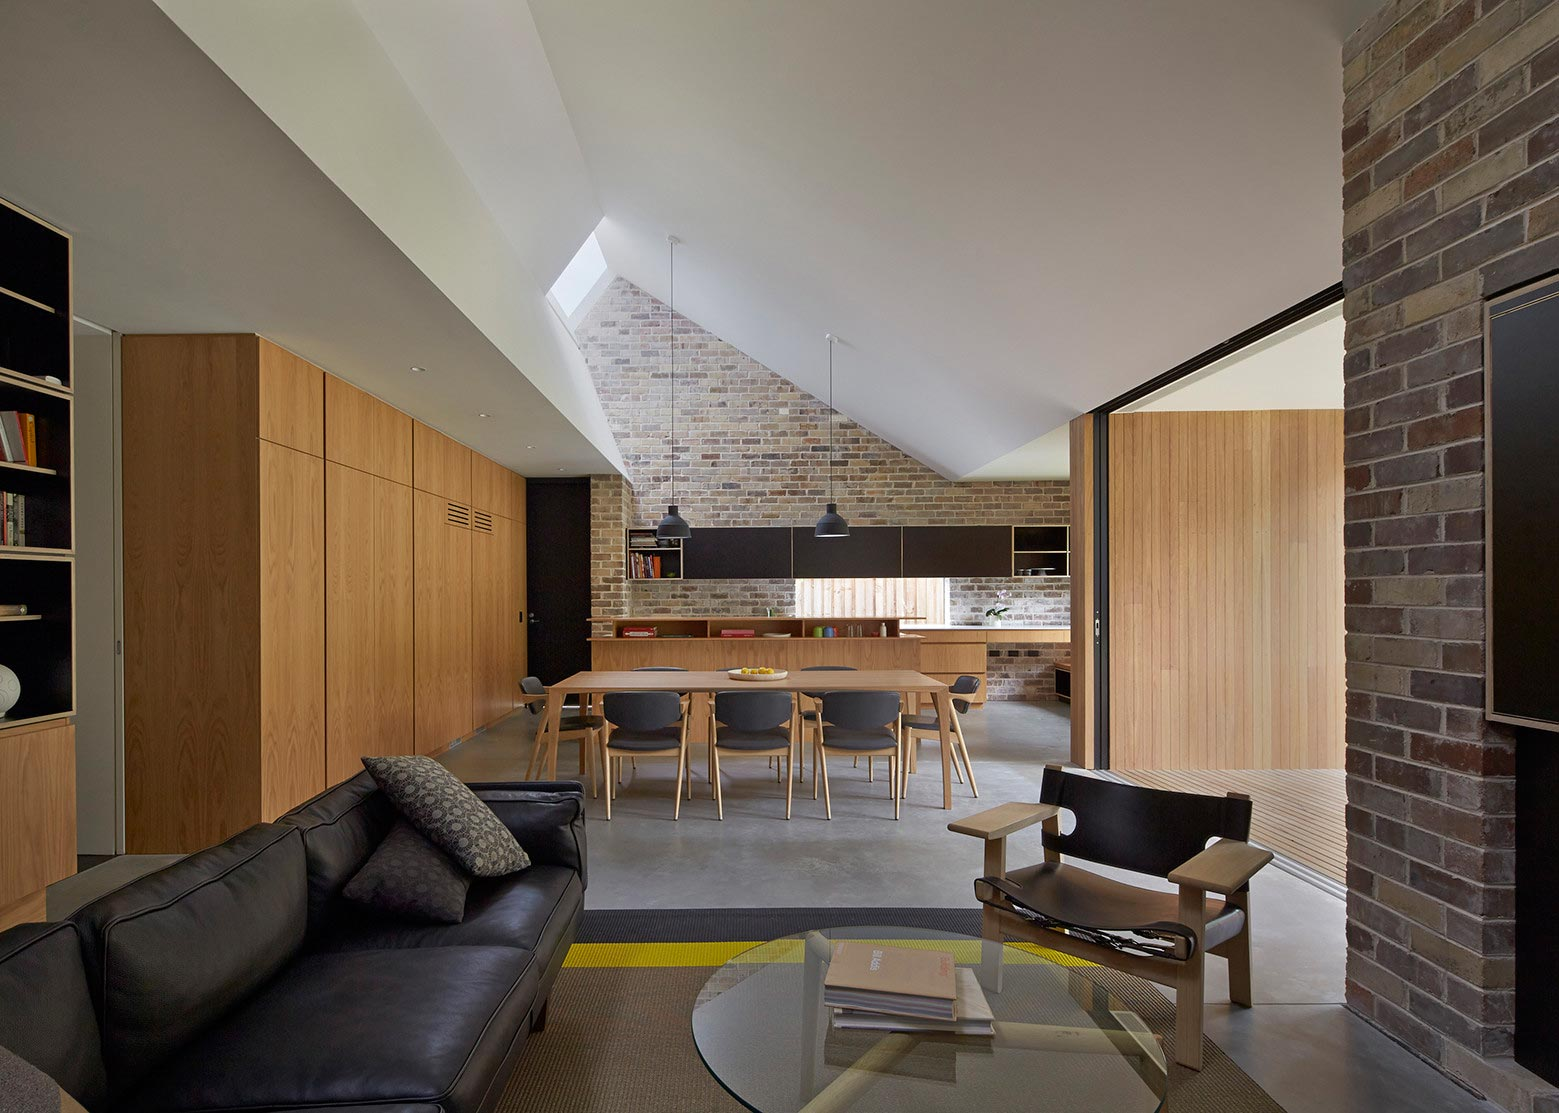 Skylight house by andrew burges architects caandesign for Skylight home